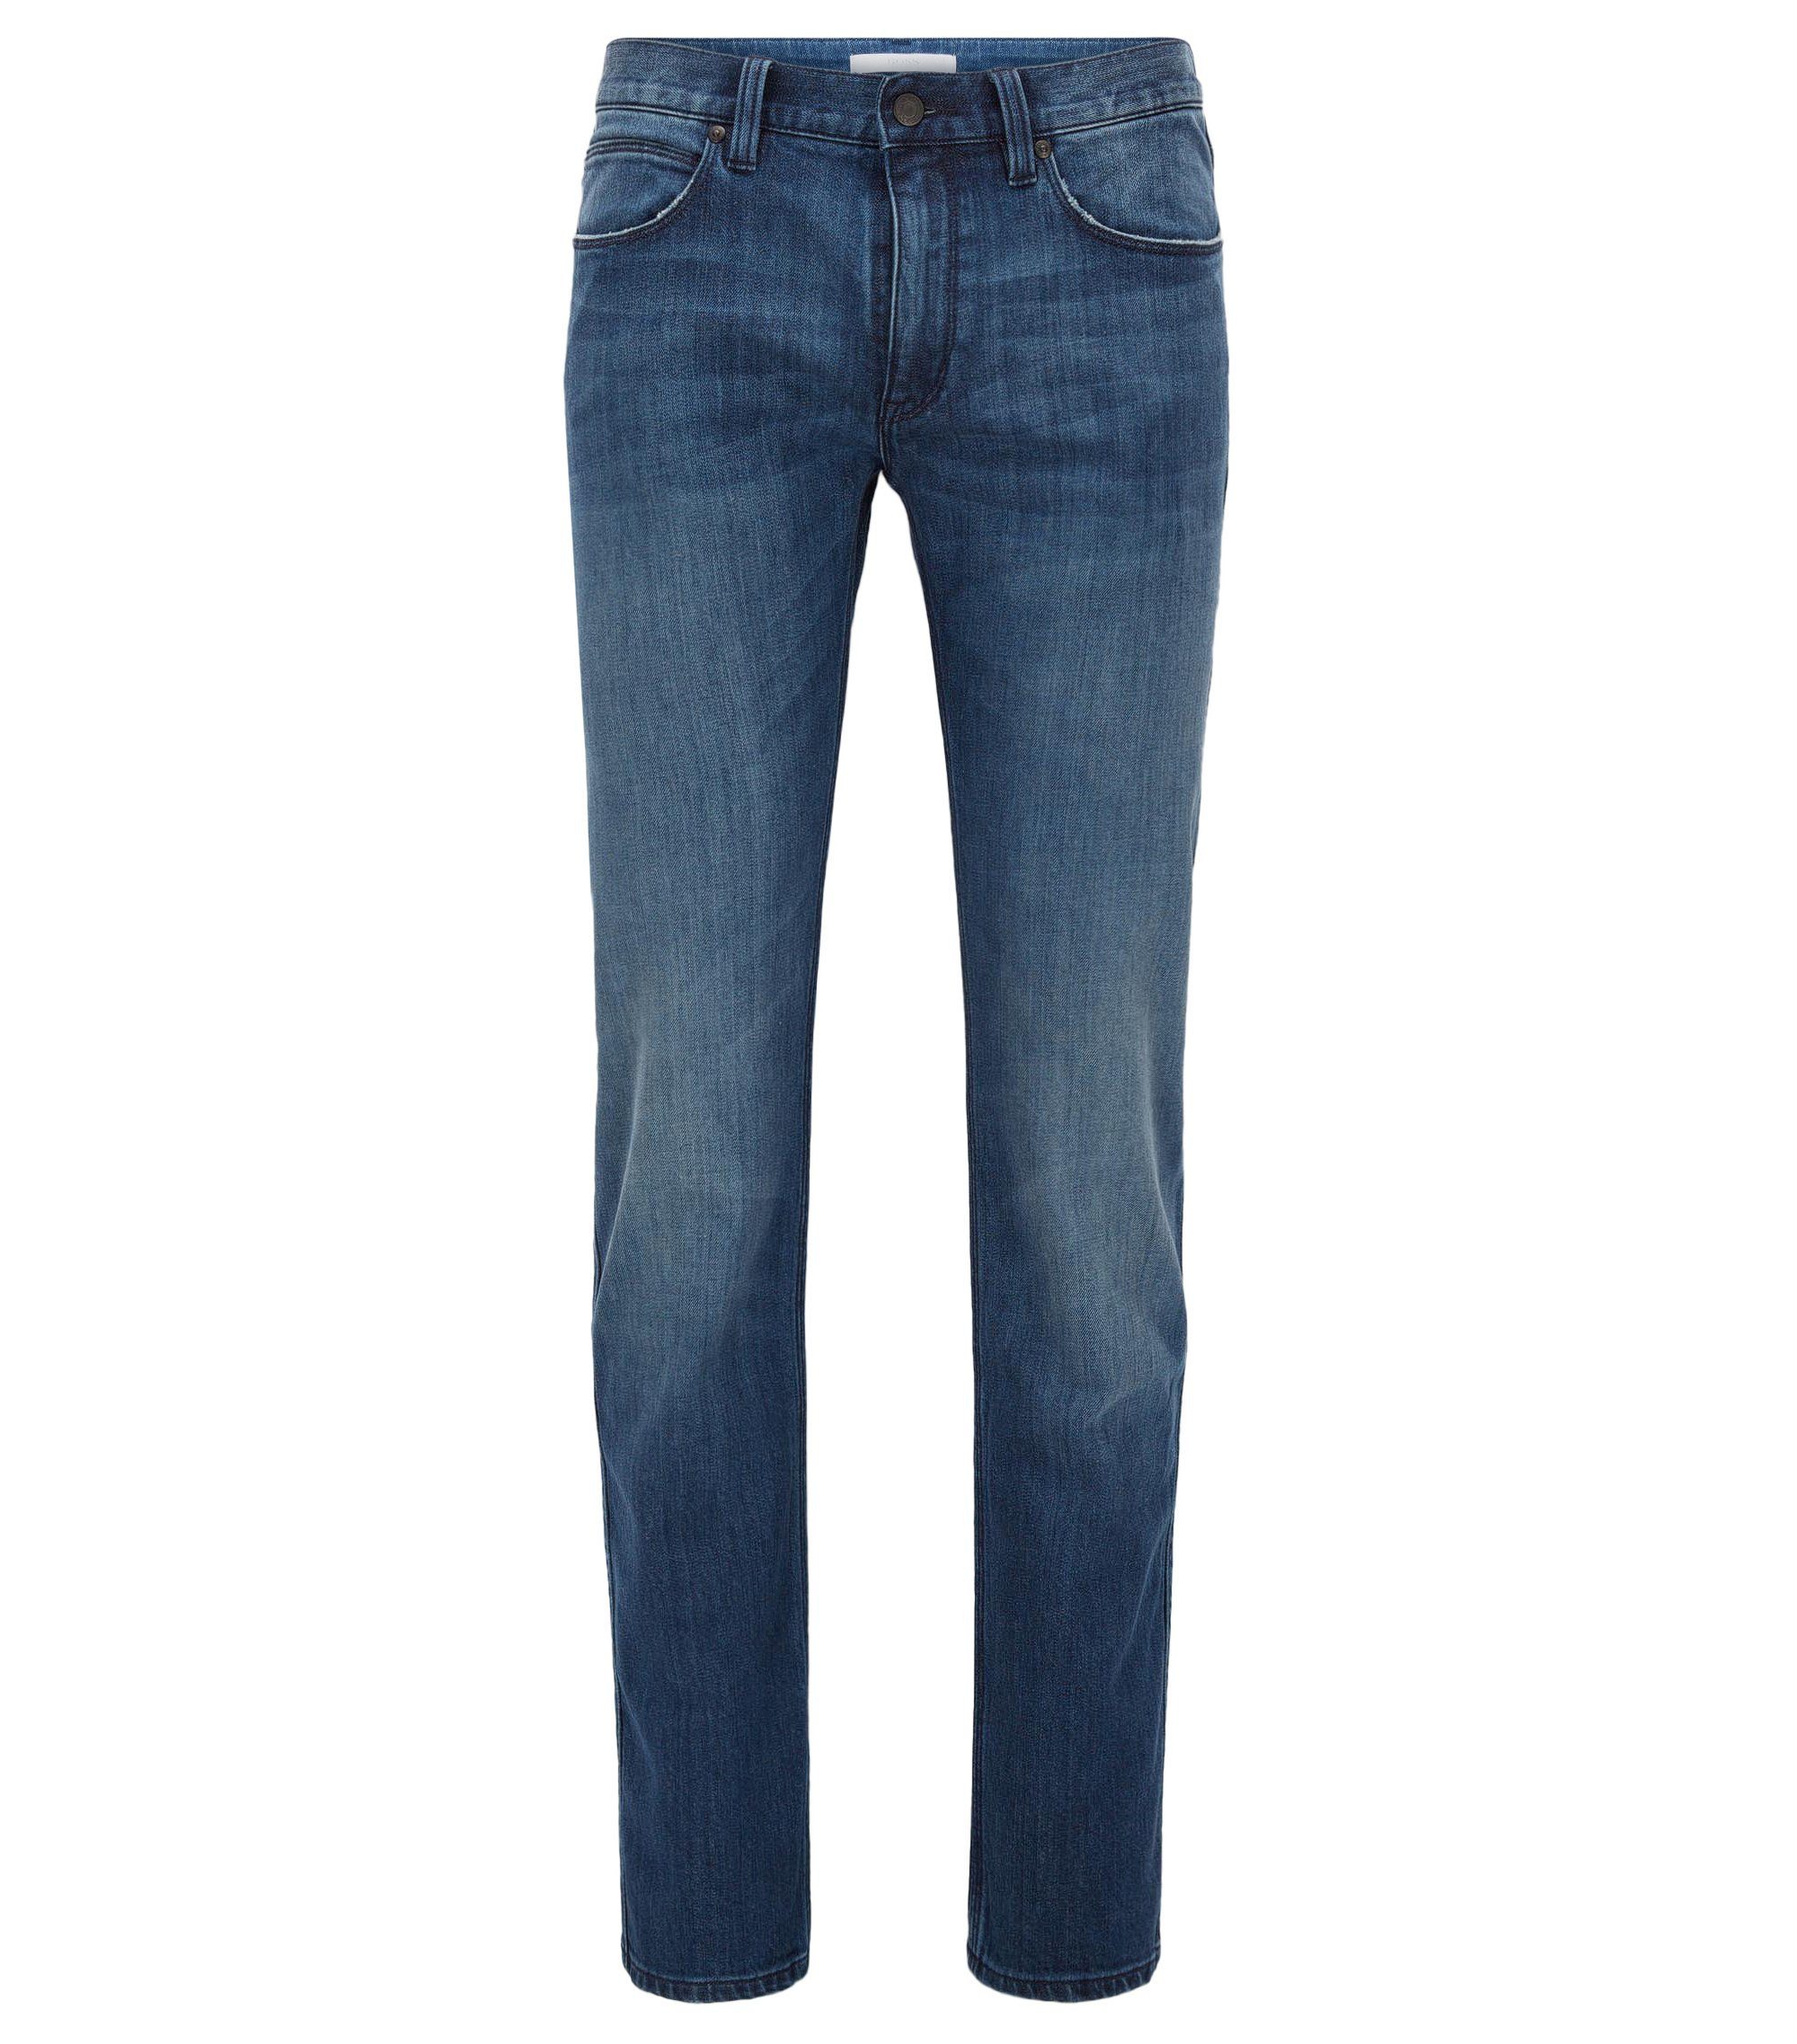 Stretch Cotton Blend Jeans, Slim Fit | HUGO 708, Dark Blue